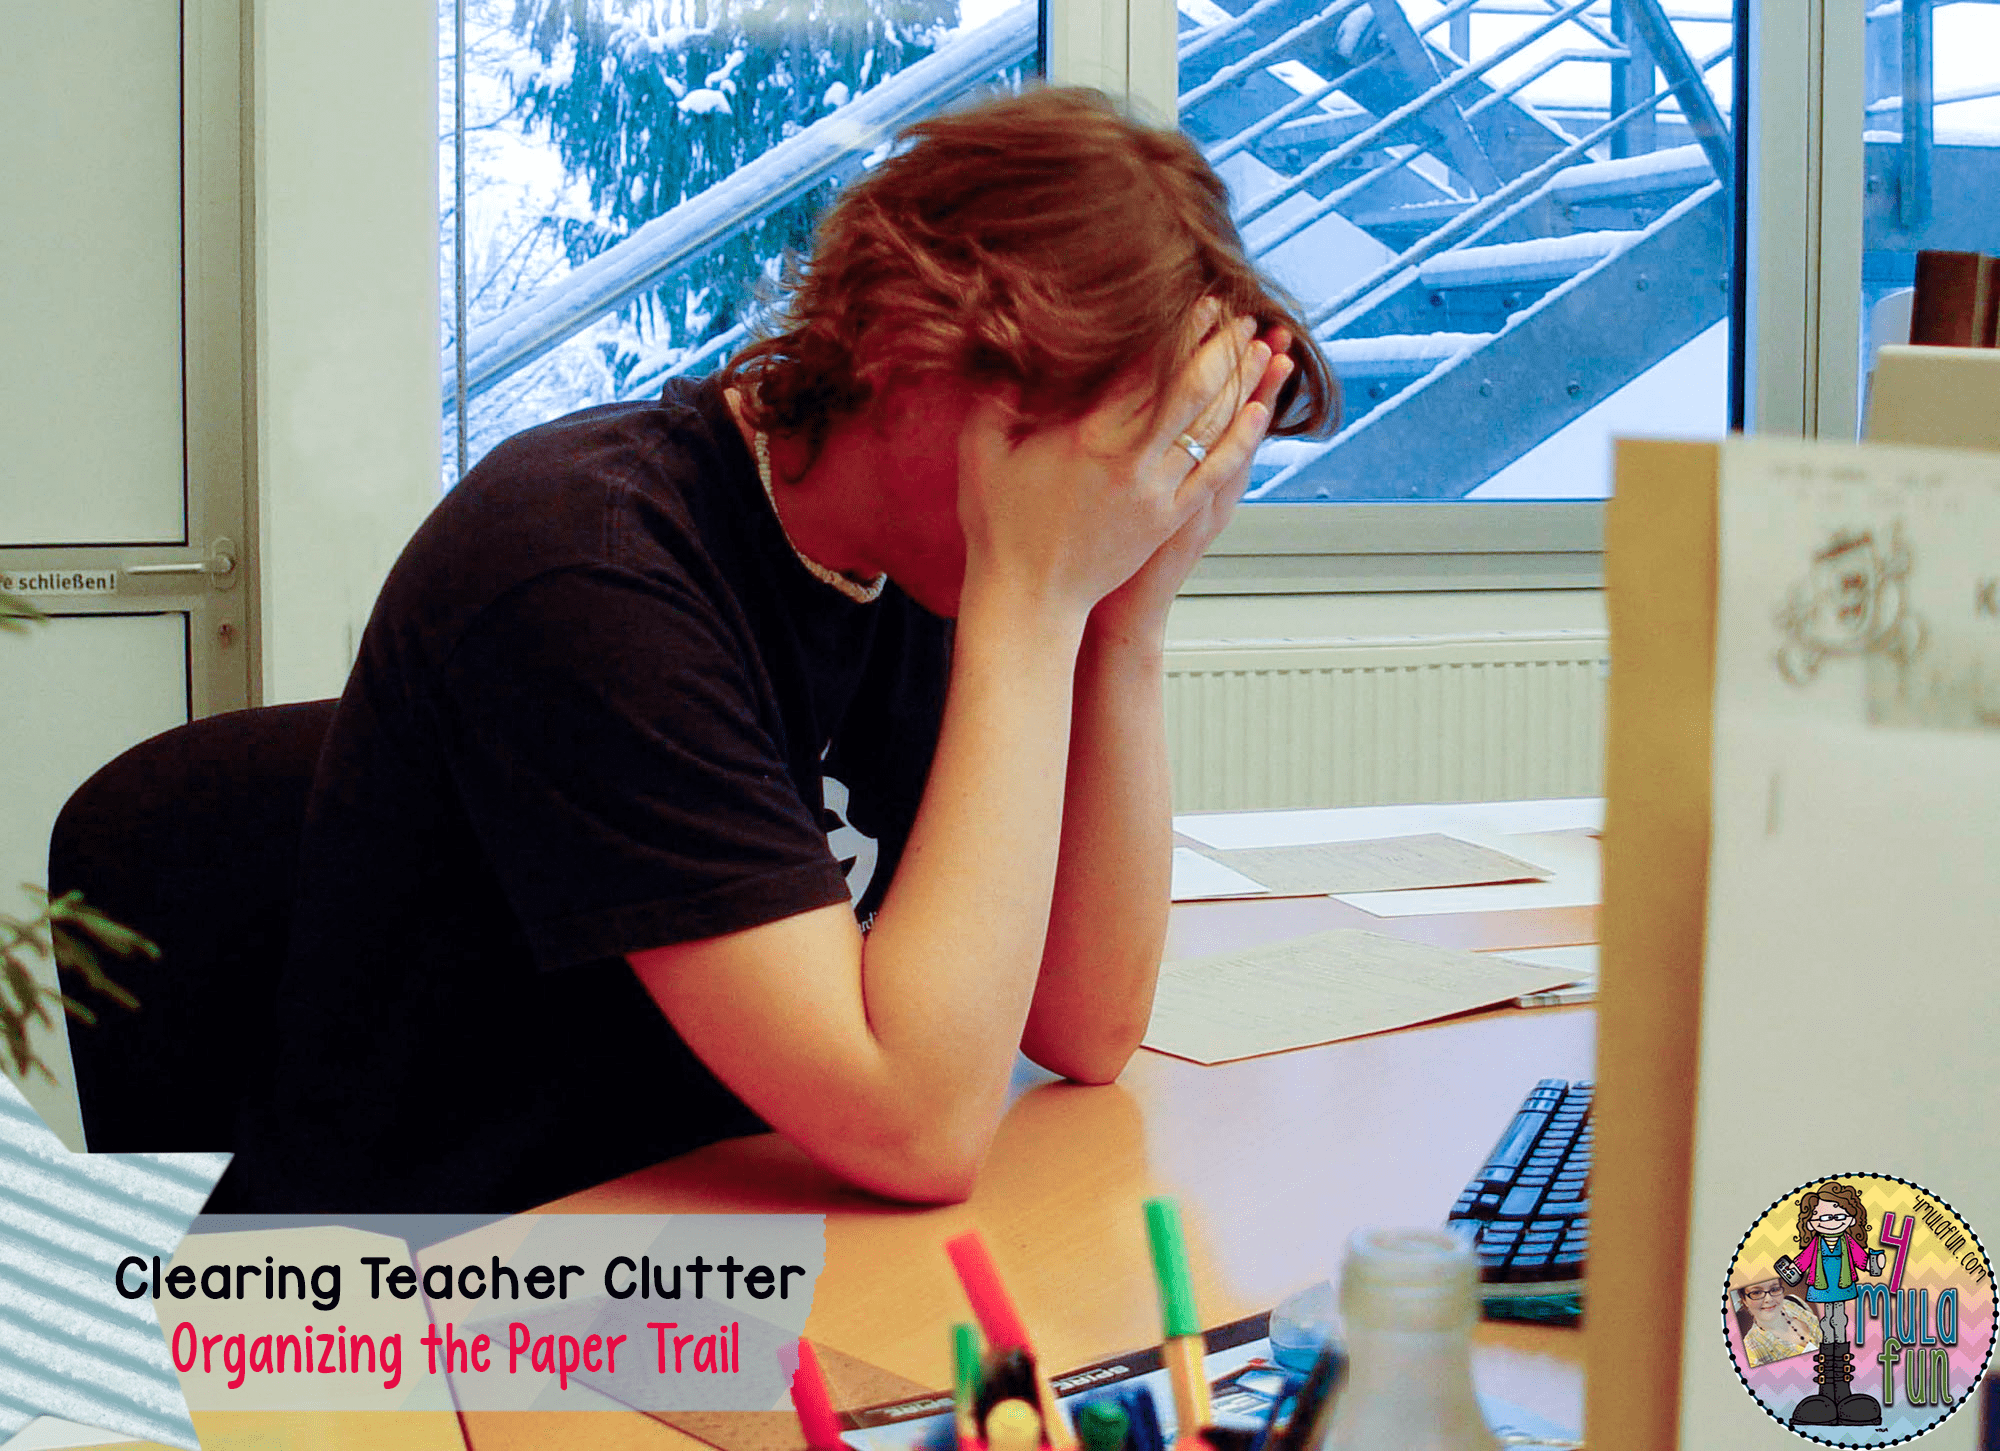 Clearing Teacher Clutter- Managing the Paper Trail